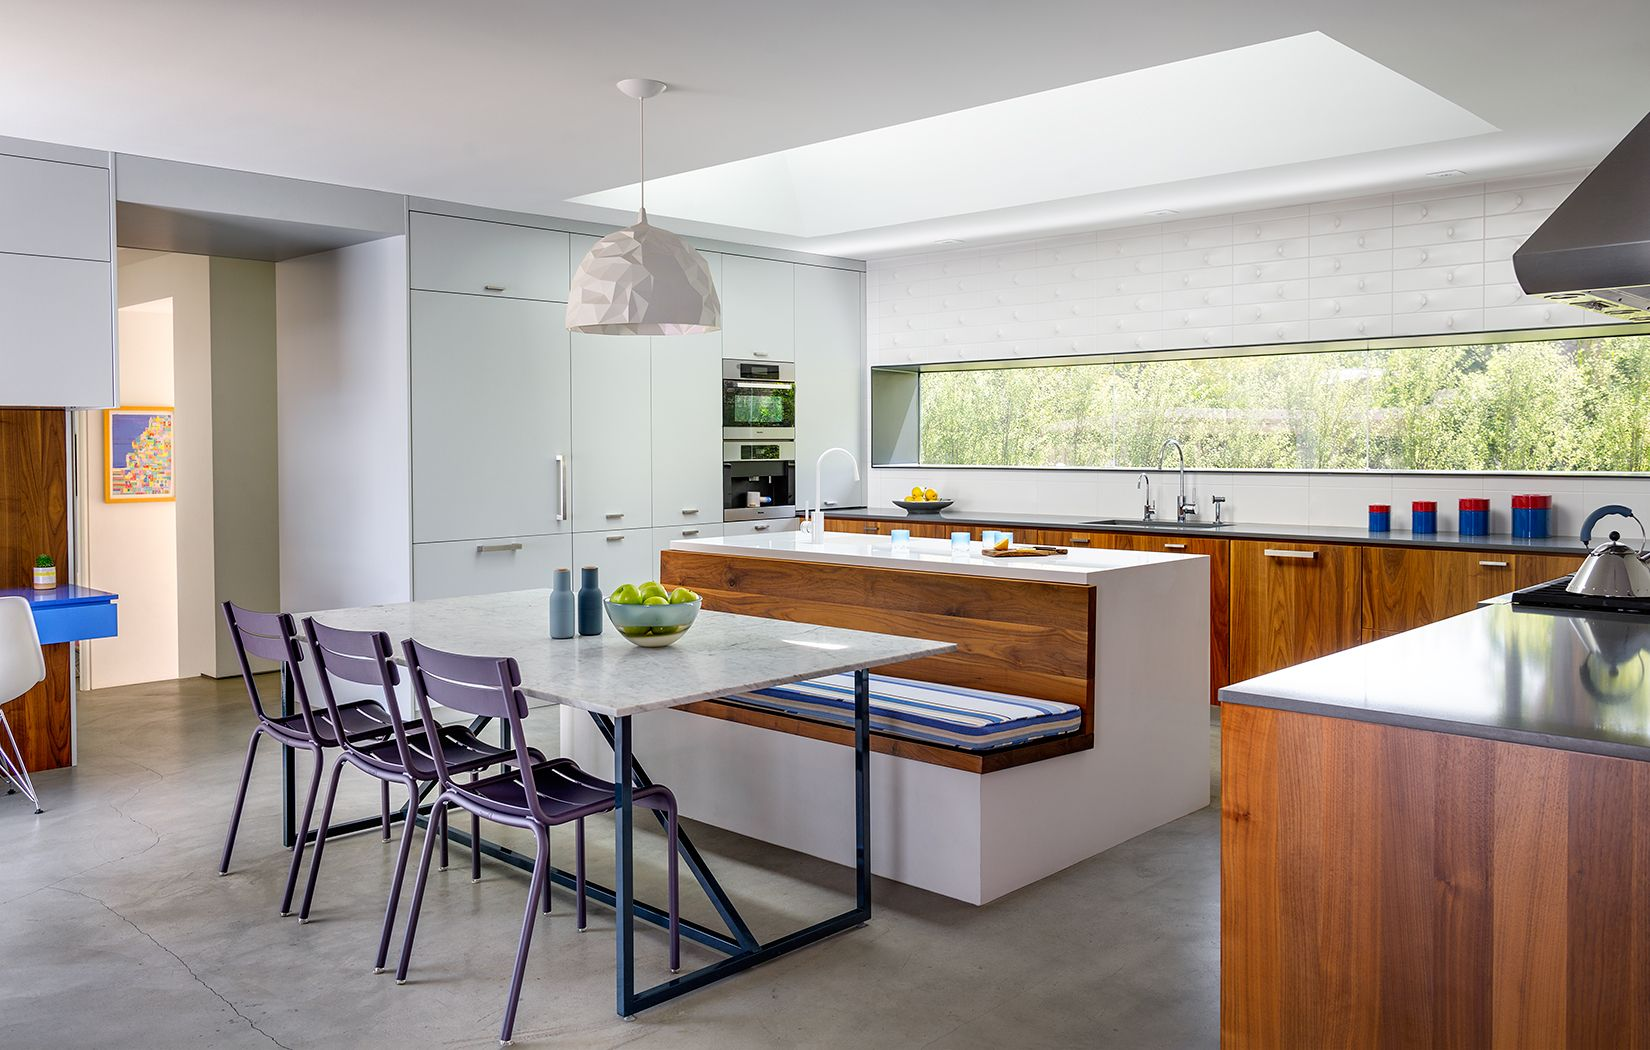 Articles About 8 Modern Eat Kitchens On Dwell Com Kitchen Island With Seating Kitchen Banquette Kitchen Island Design